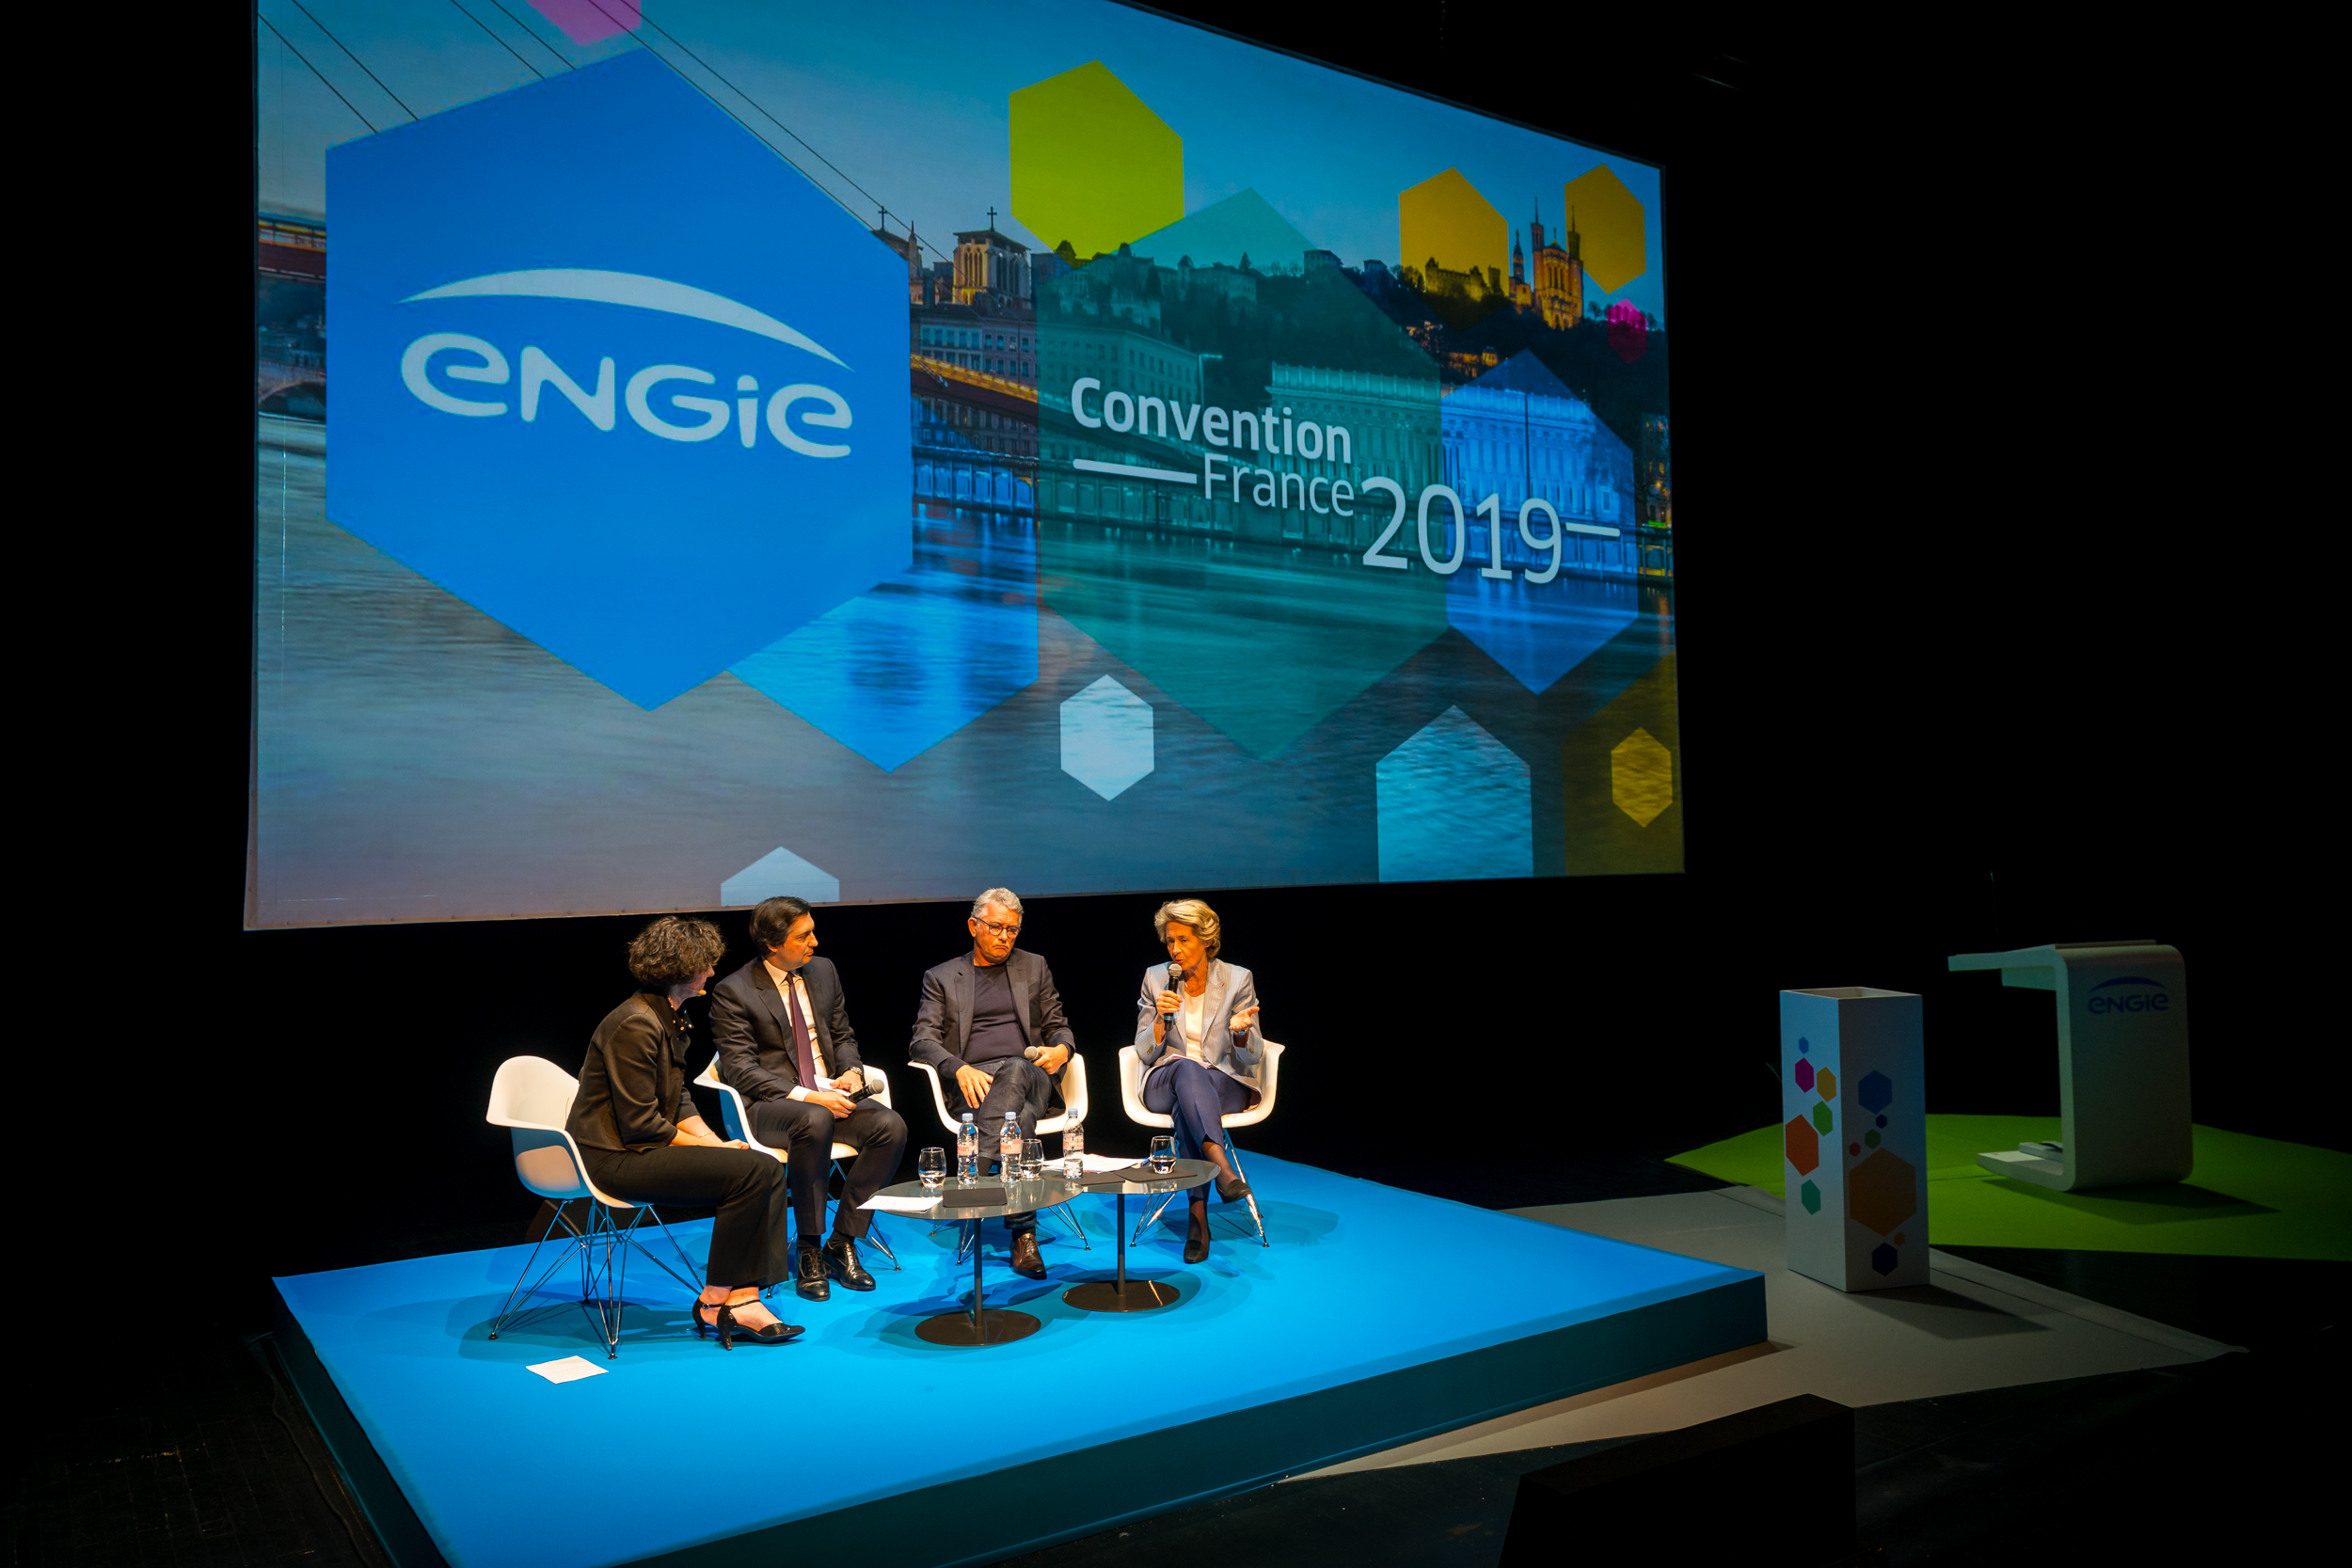 Engie_Convention France_21-05-19_Florian Leger_HD_N°-149.jpg